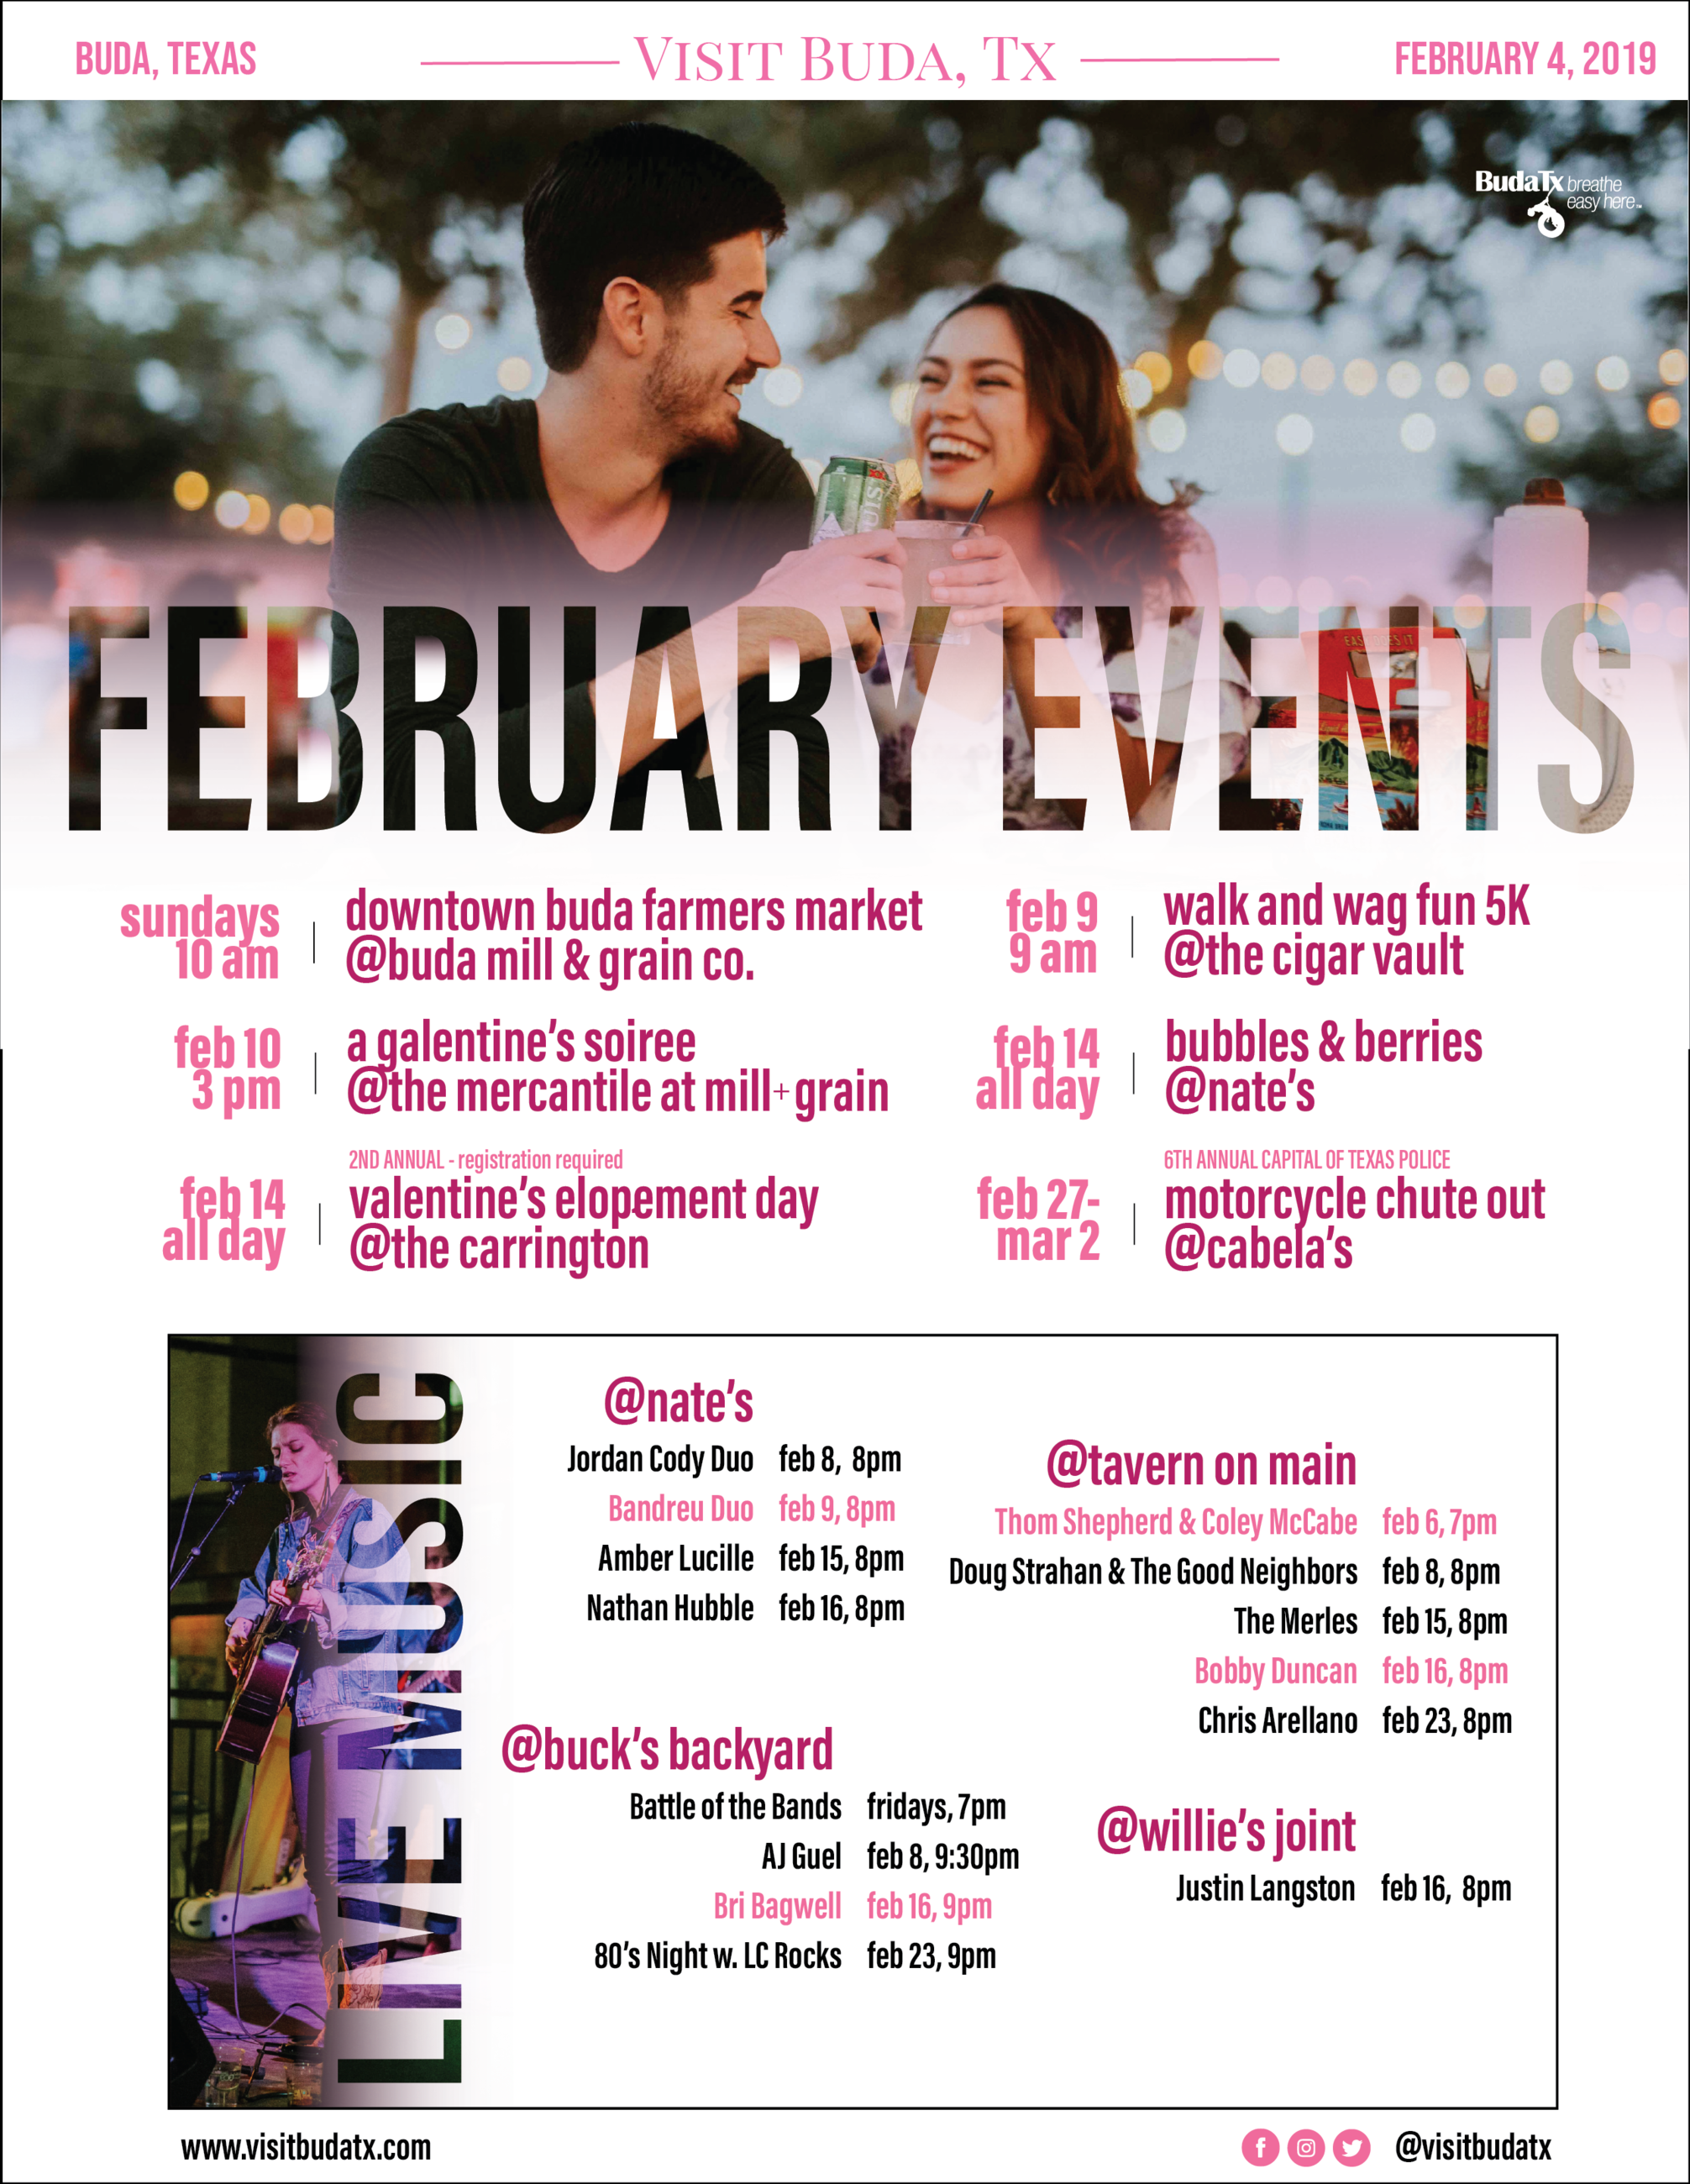 A listing of events in Buda, TX